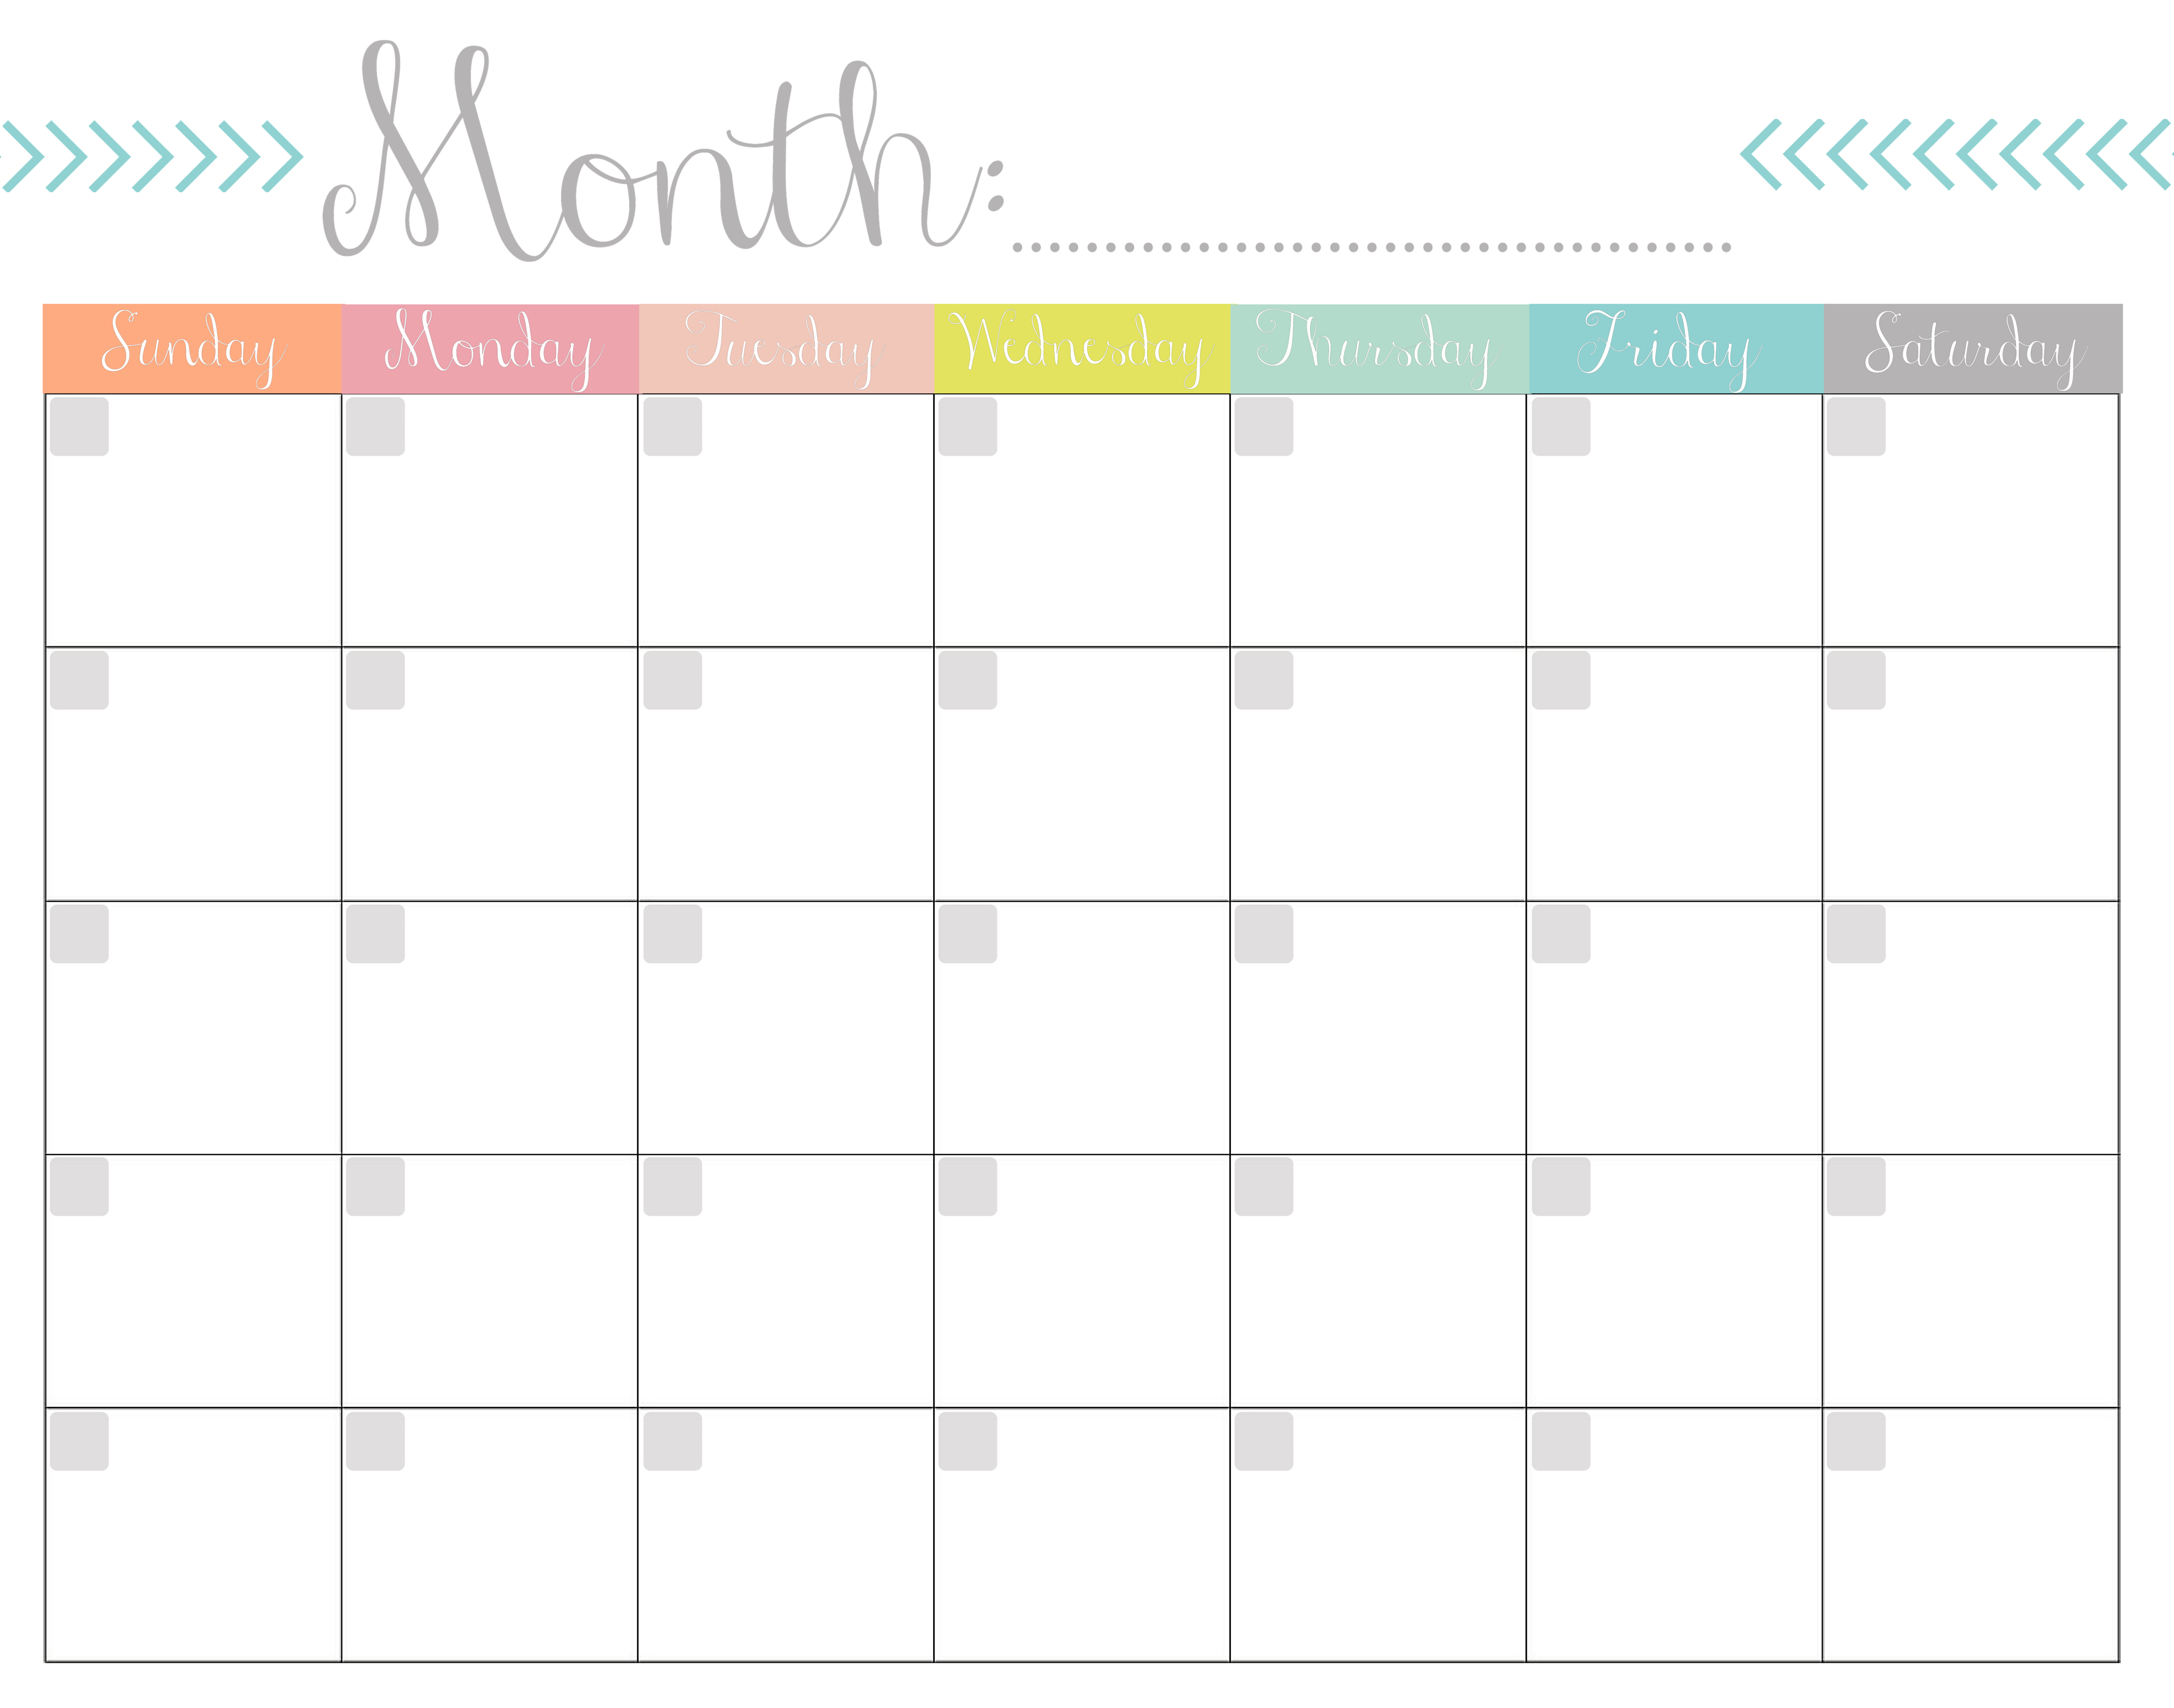 Printable Monthly Calendar Free | Hauck Mansion